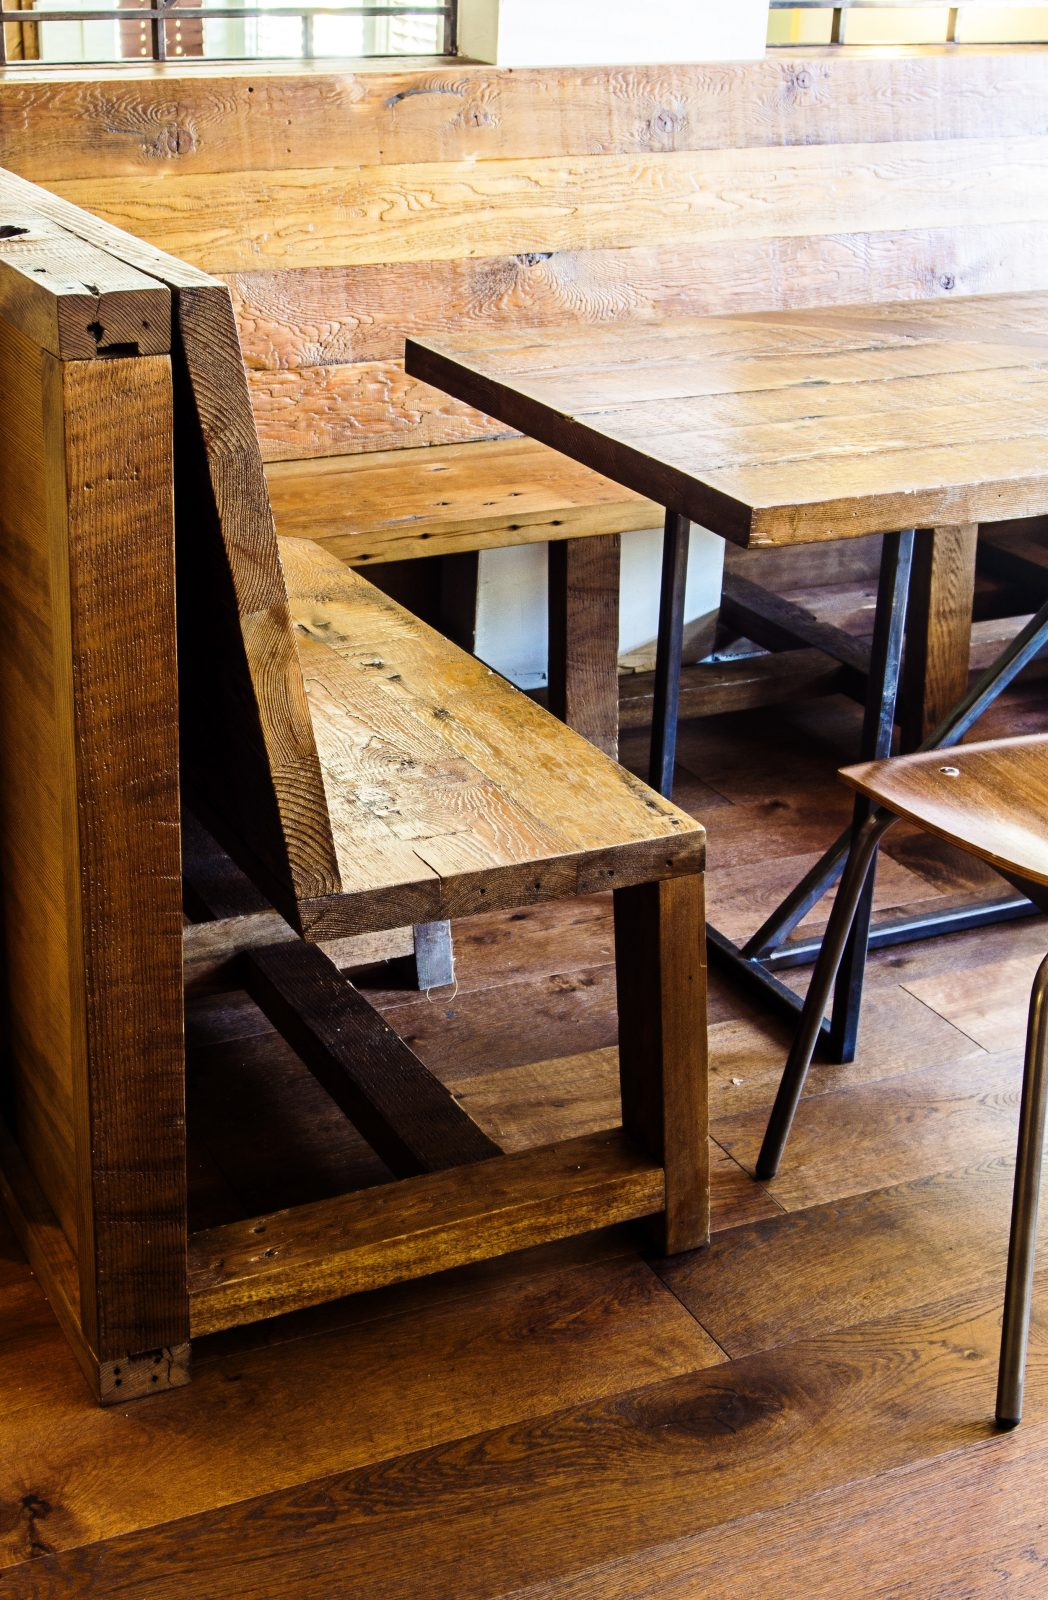 The Snug Table and Bench